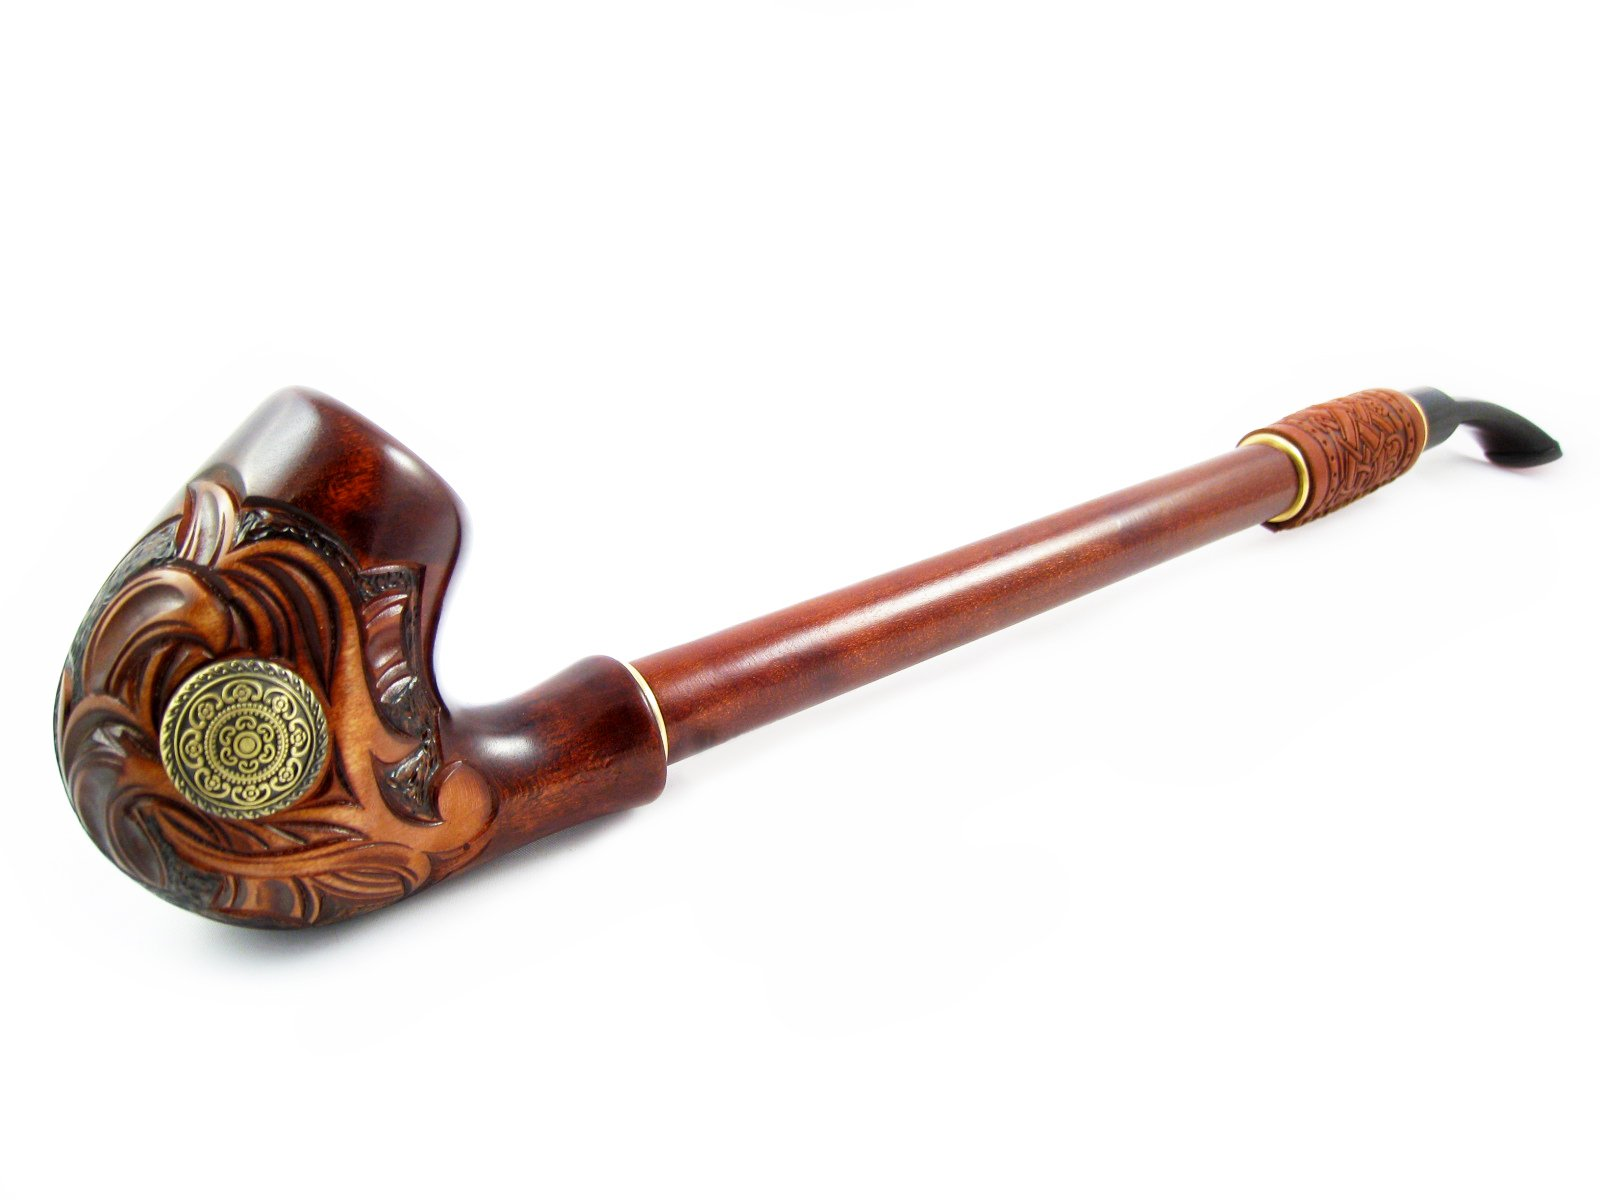 NEW Churchwarden ''NORDIC'' Wooden Tobacco Pipe Decorated with Leather, Handcrafted Smoking Pipe of Pear Wood 13'', Designed for pipe smokers ... (1)